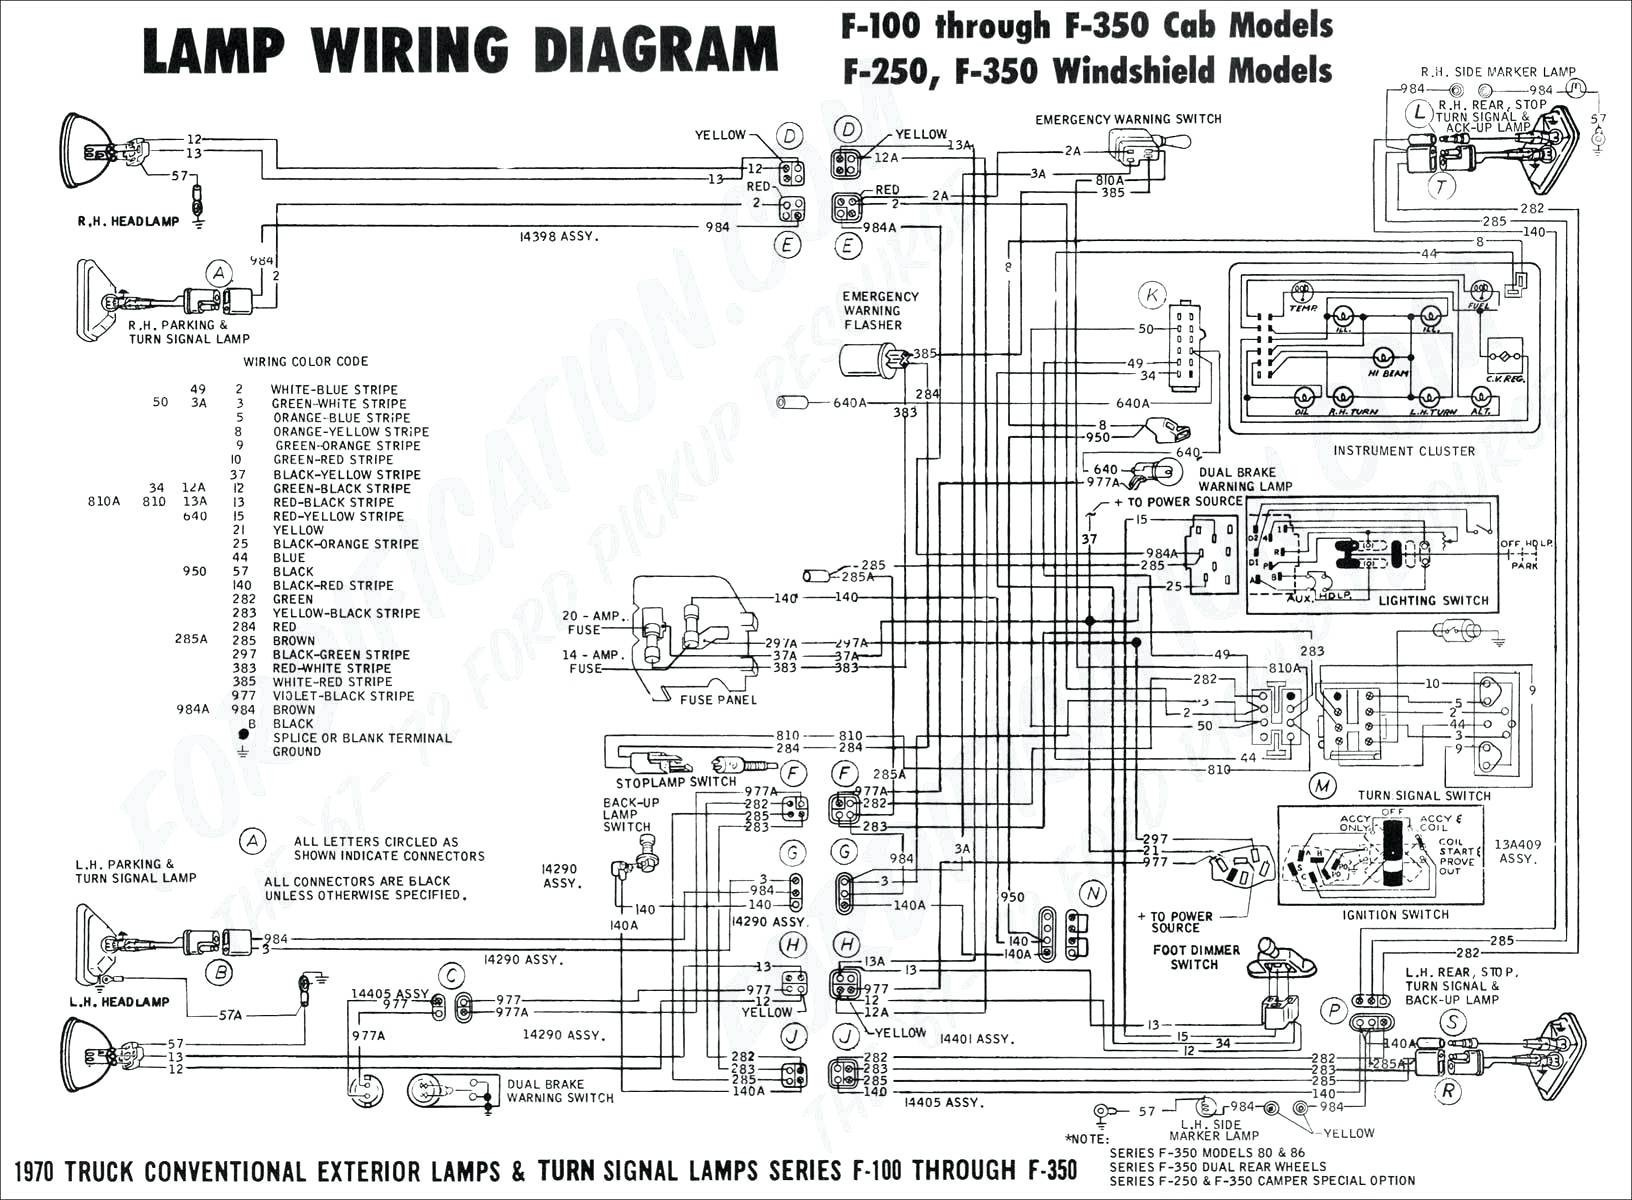 99 Honda Accord Spark Plug Wiring Diagram